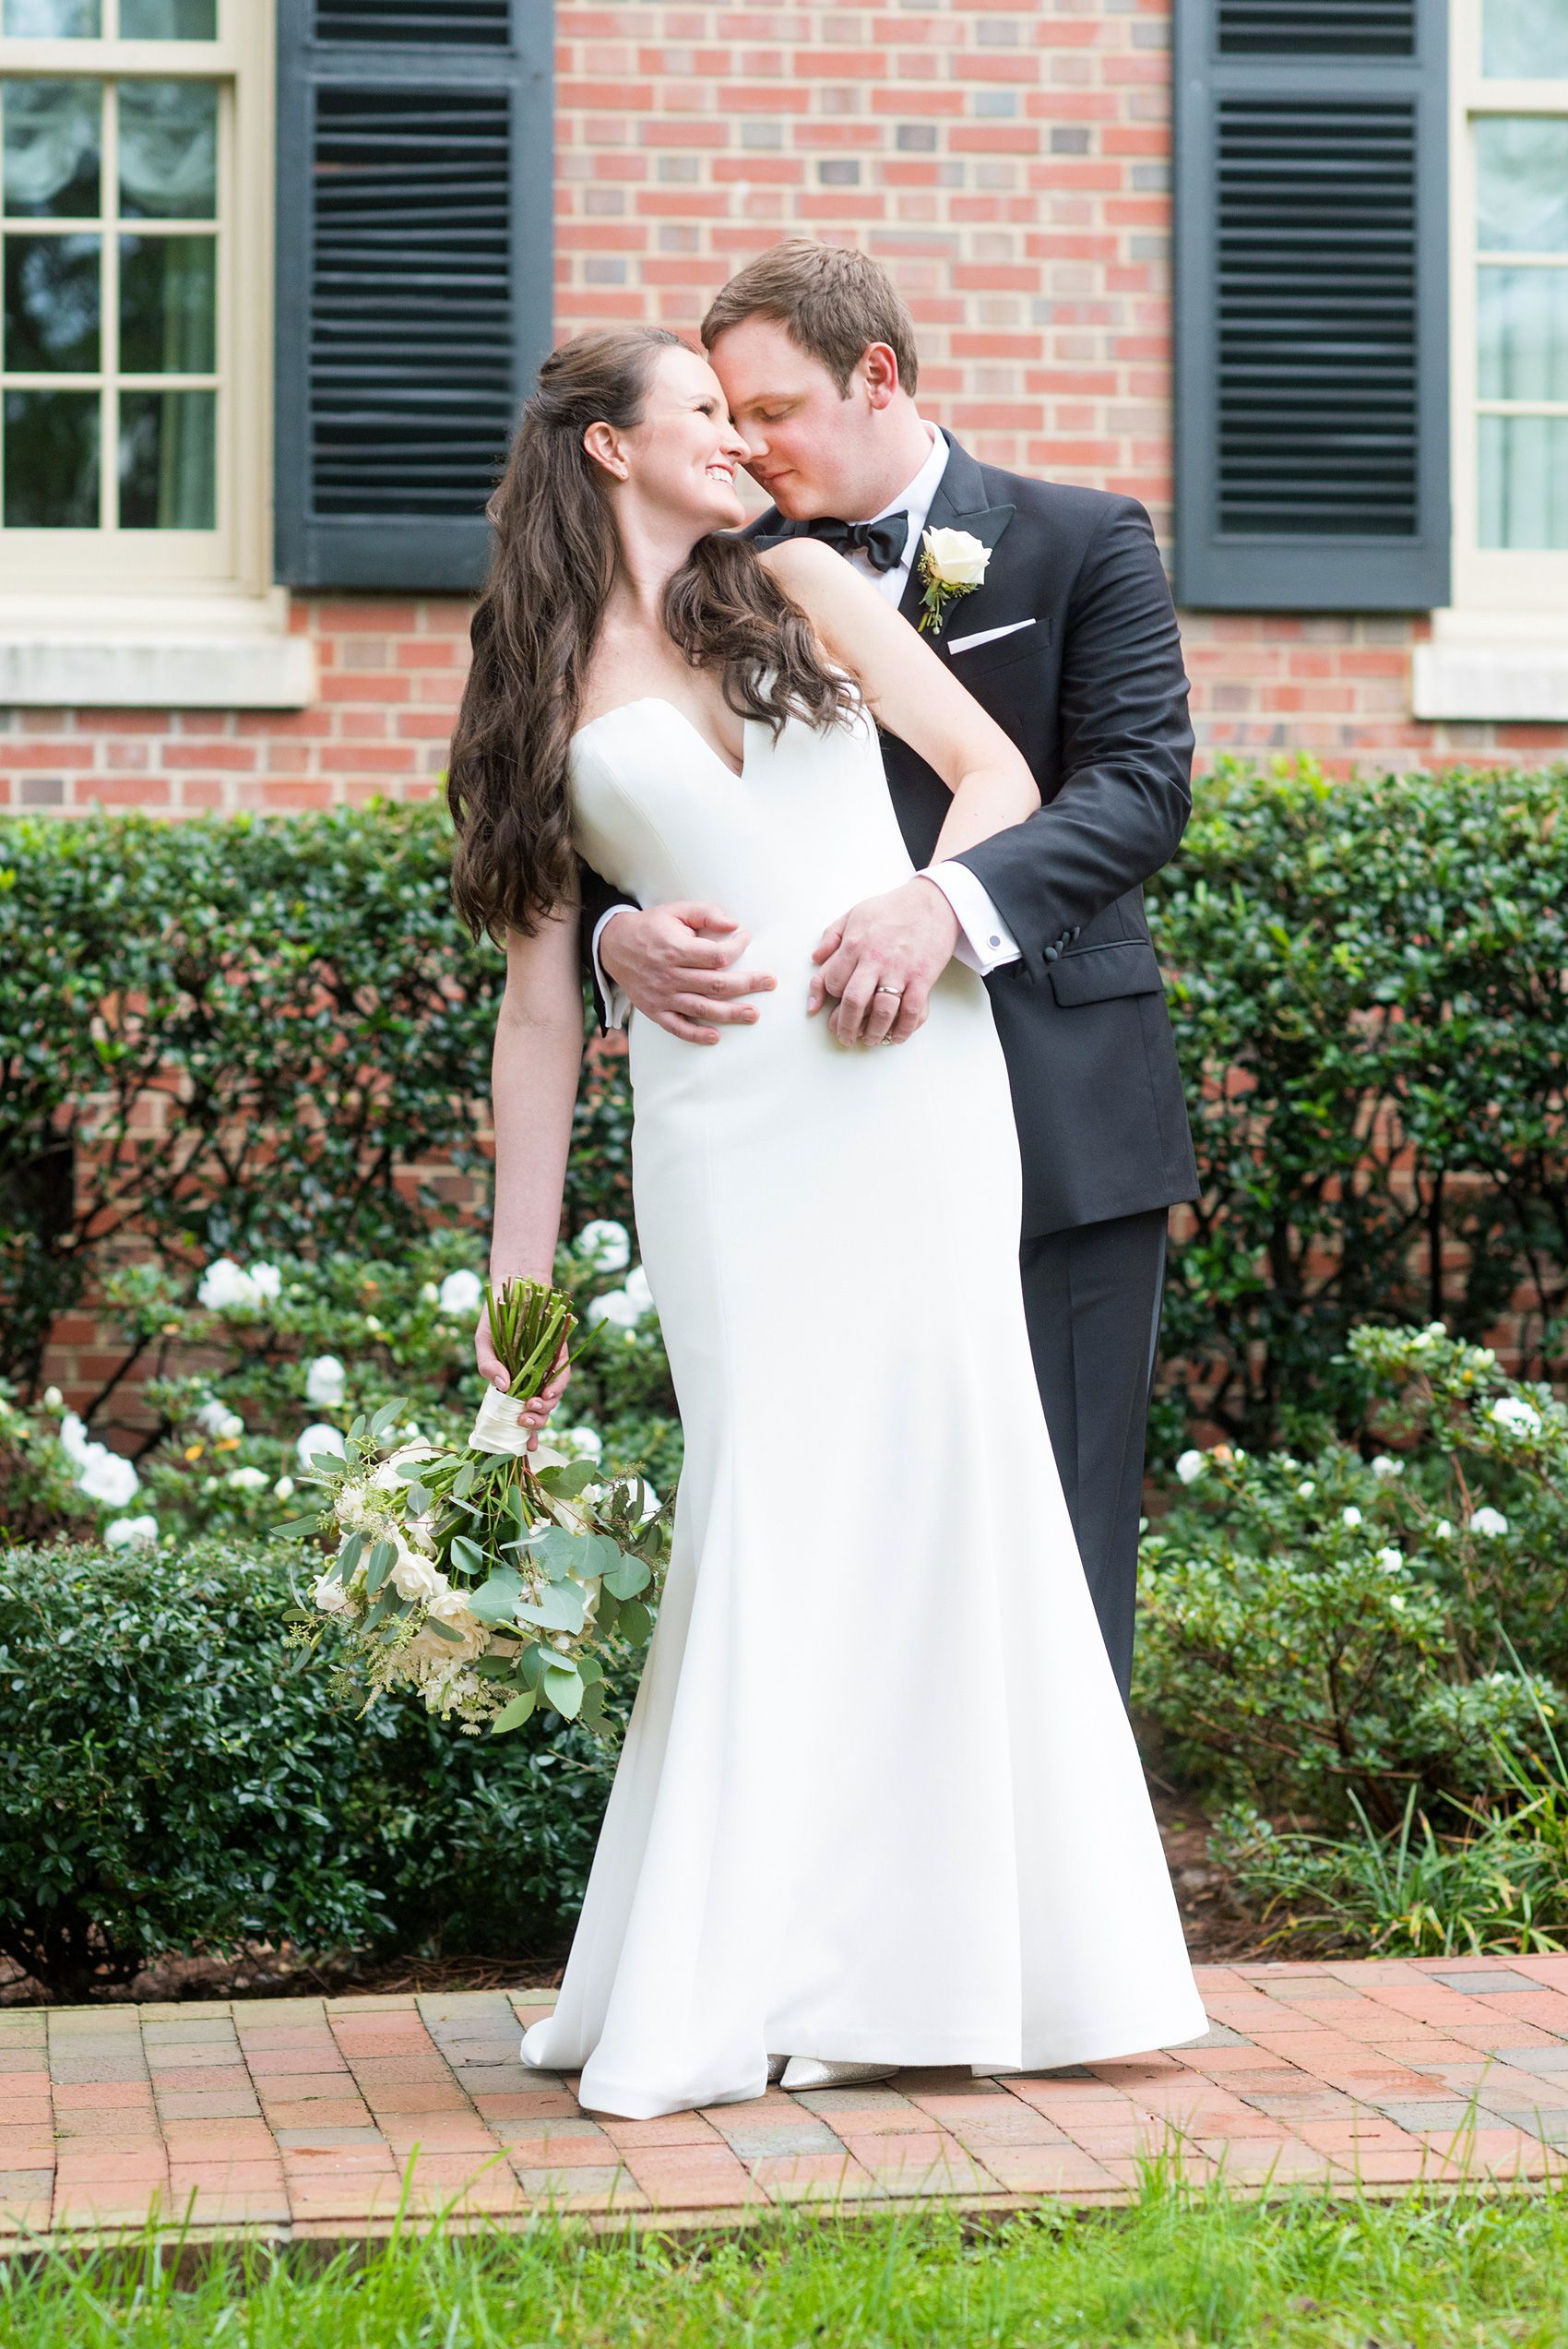 Raleigh wedding photographer, Mikkel Paige, at The